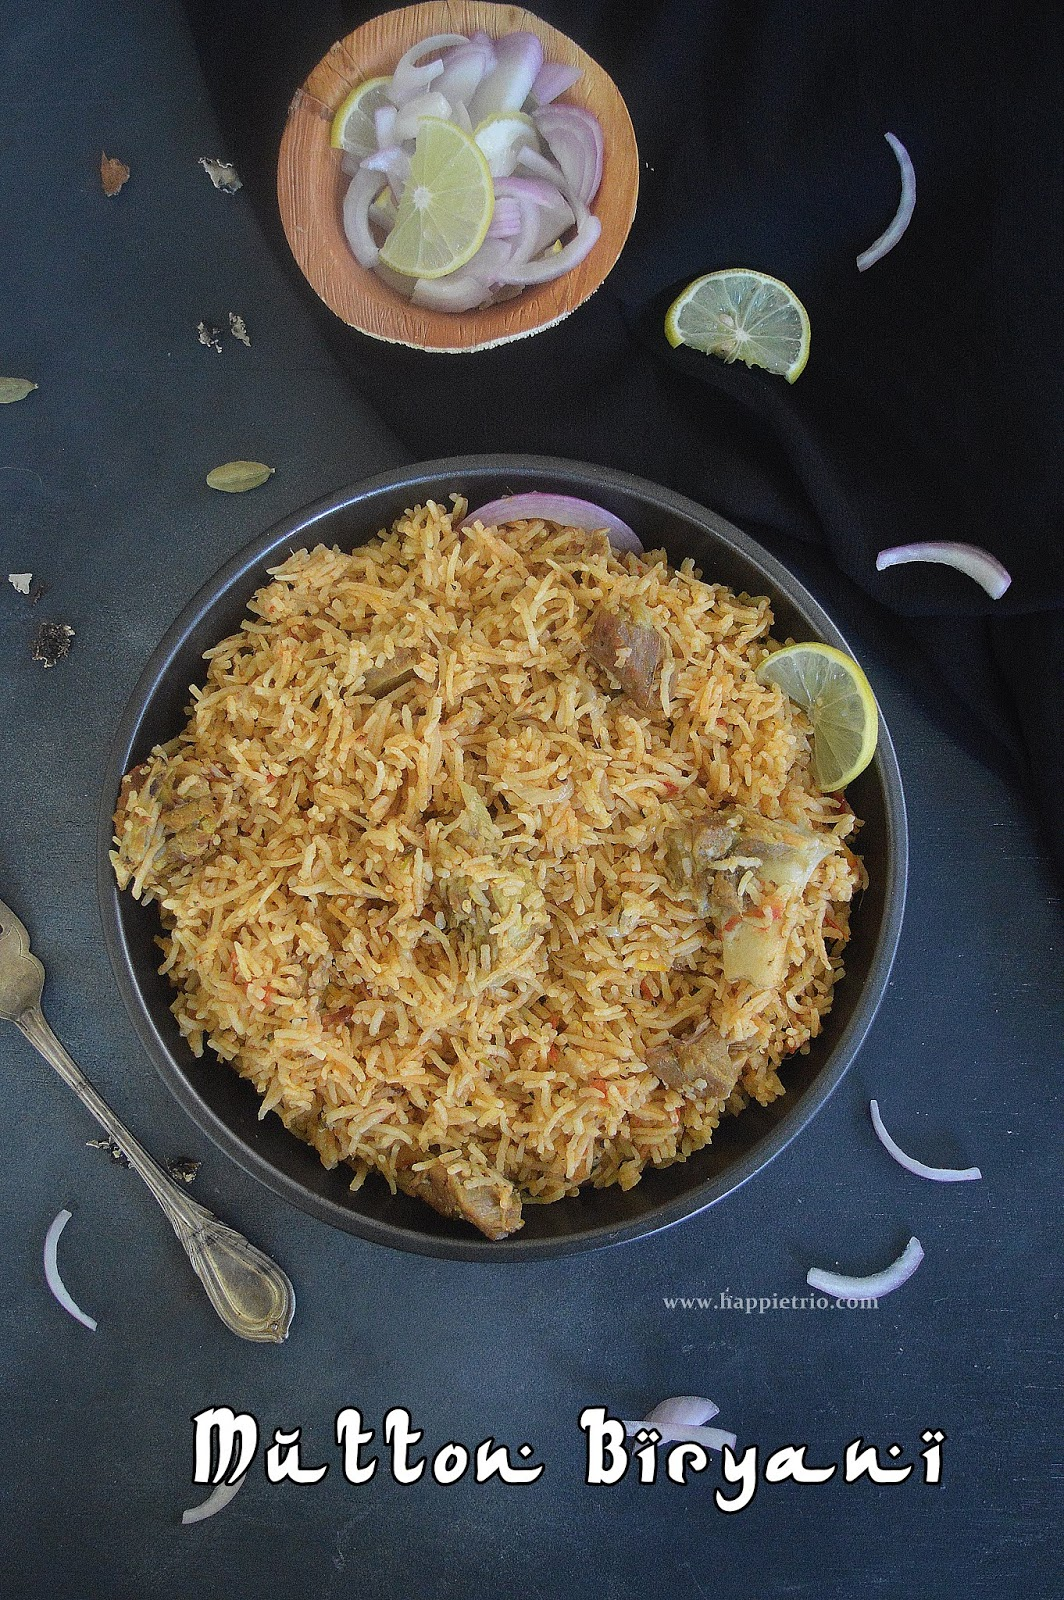 Mutton Biryani Recipe | How to cook Mutton Biryani in Pressure Cooker